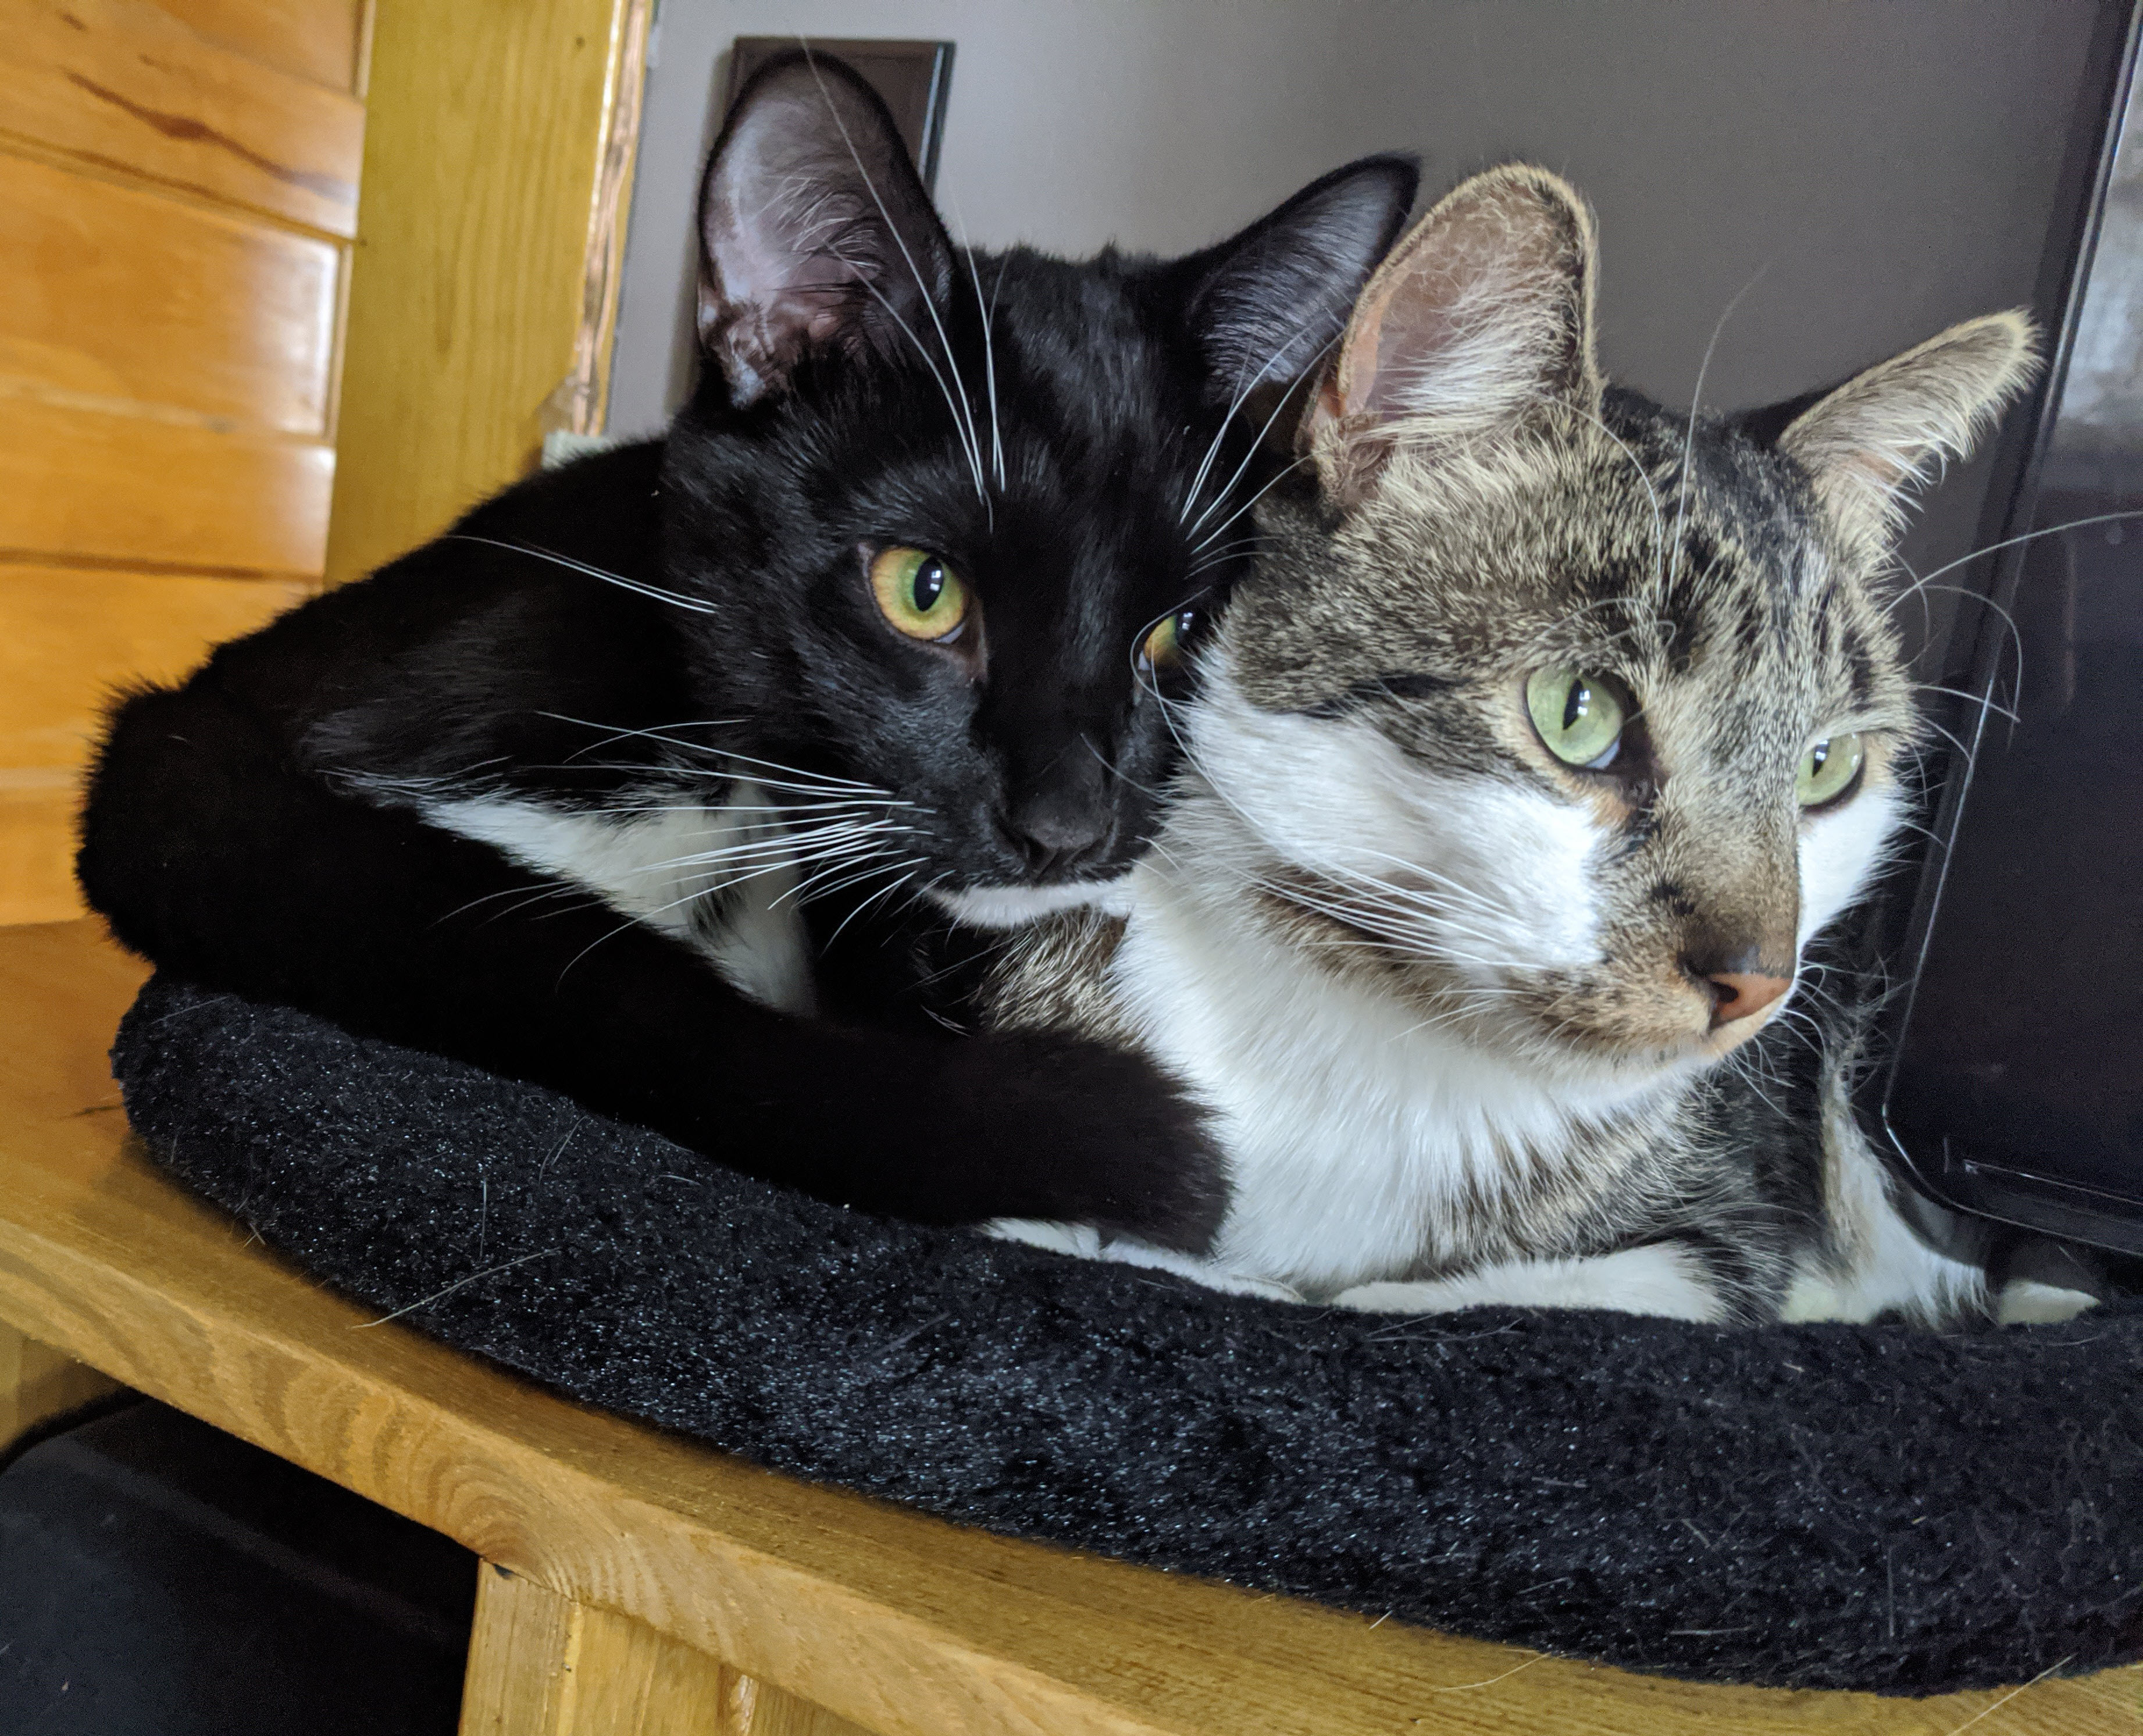 Two cats snuggling.